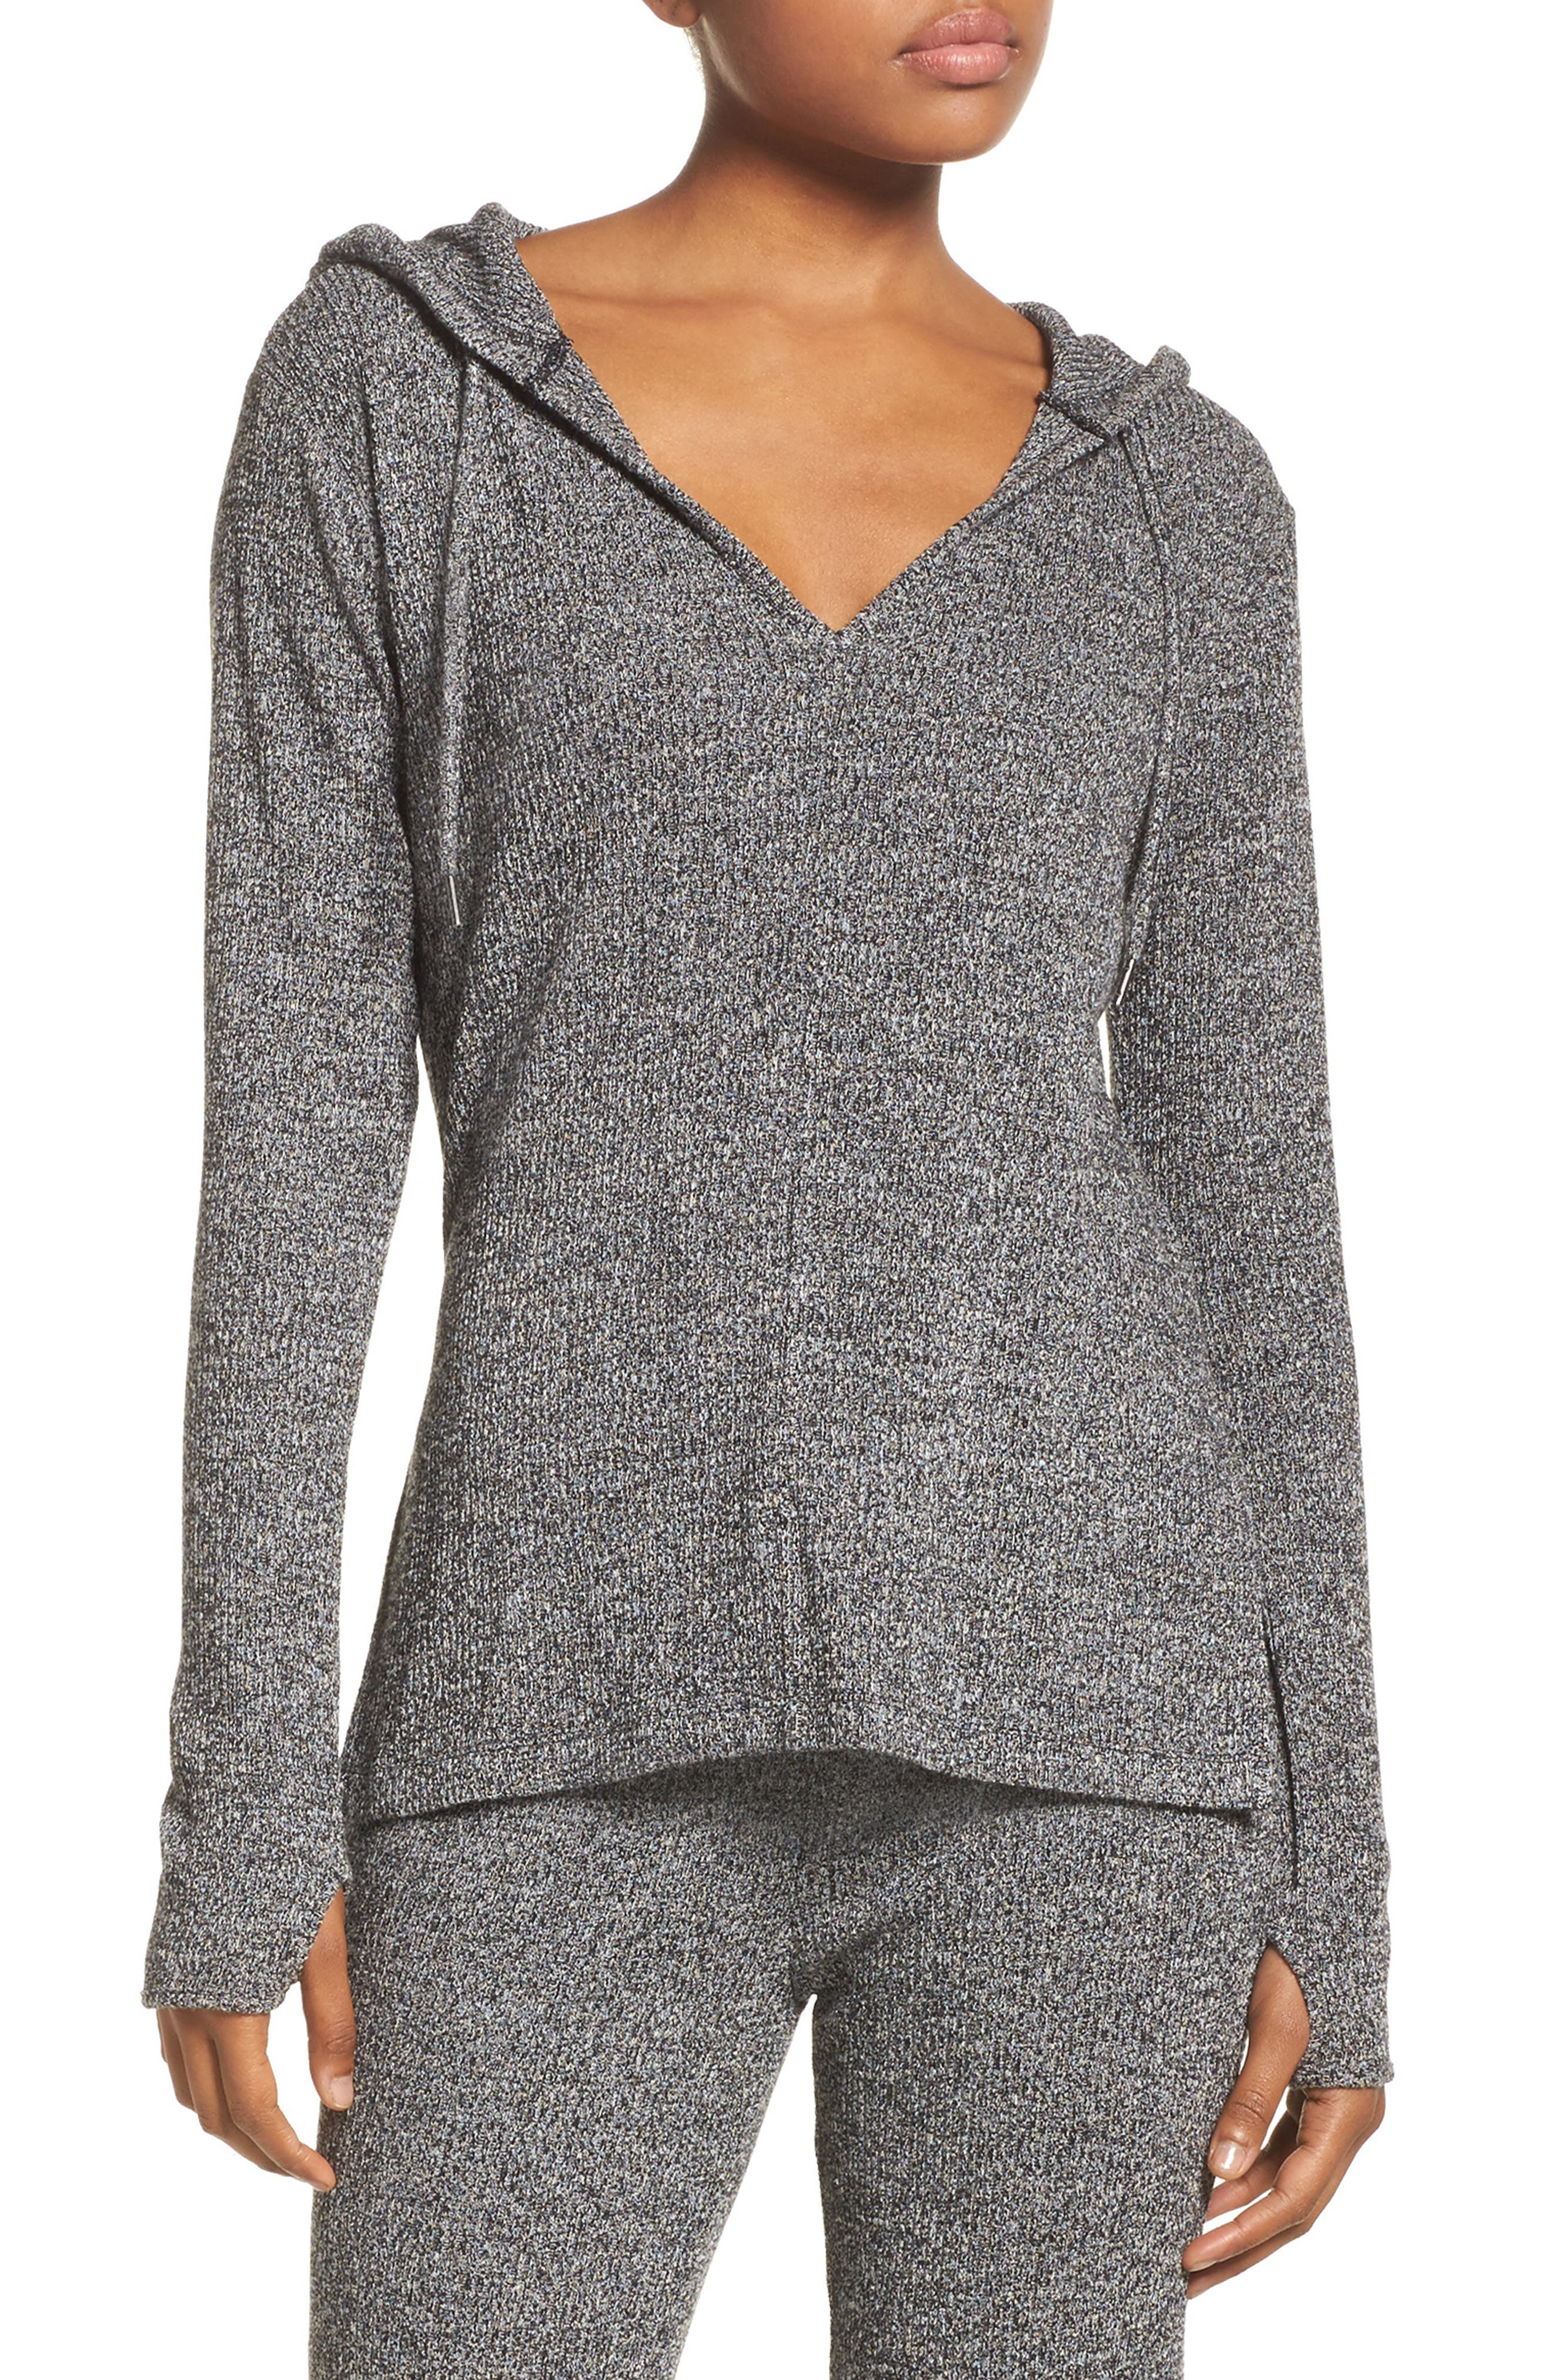 Alternate Image 1 Selected - Zella Mantra Hooded Pullover Top